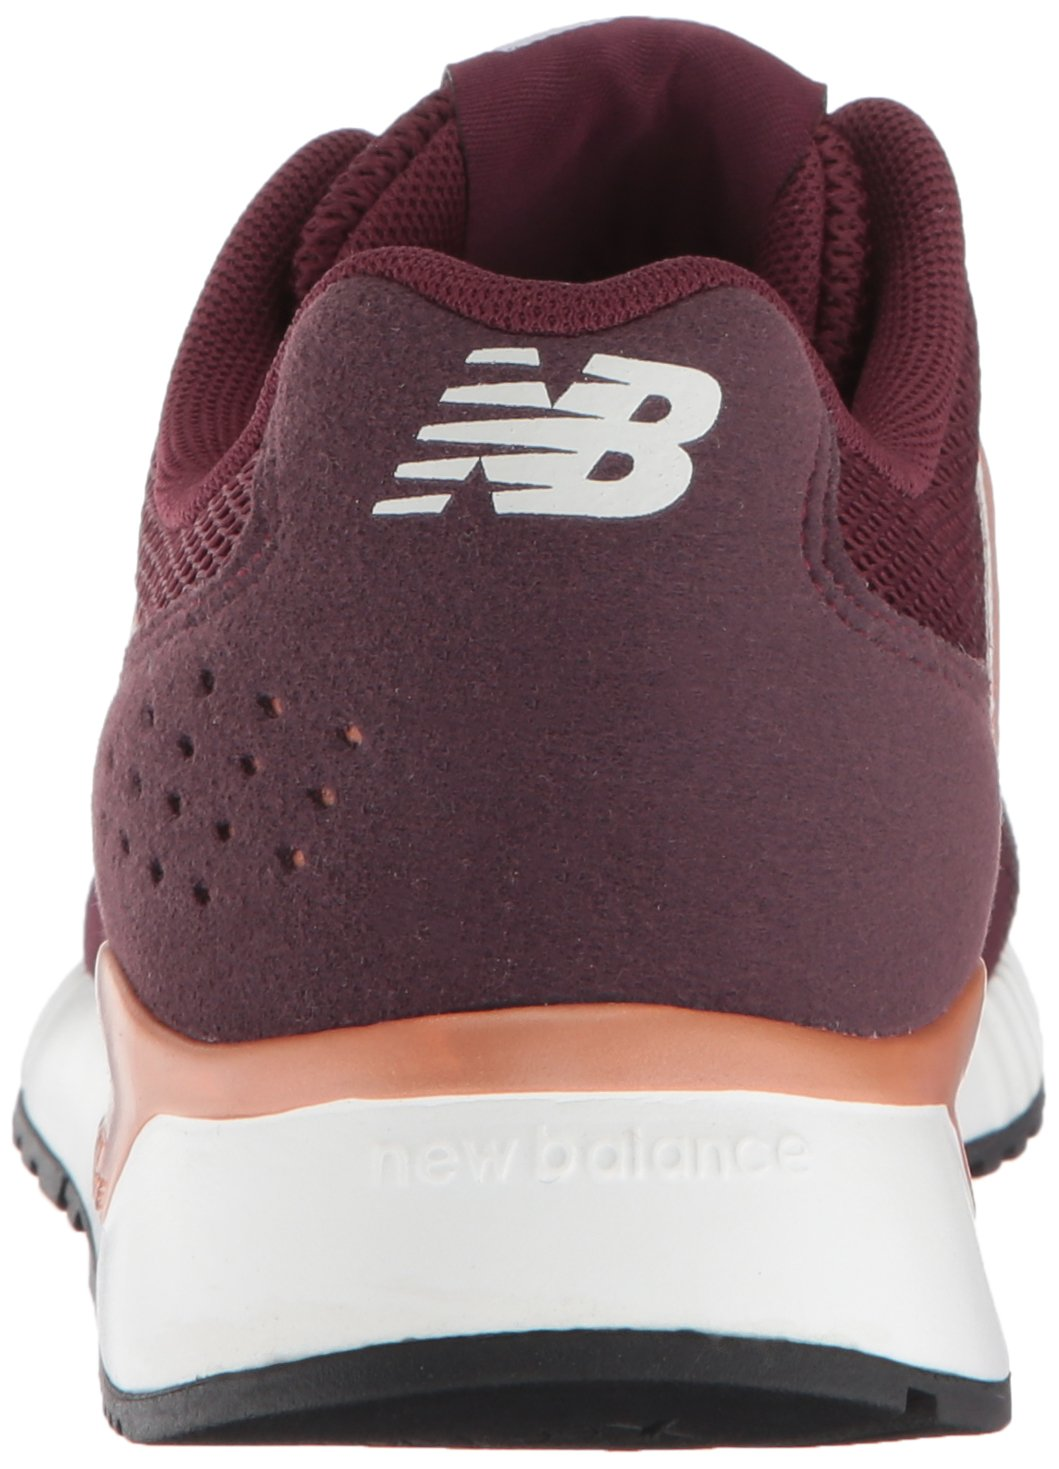 New B075R7JPNT Balance Women's 5v2 Sneaker B075R7JPNT New 7 D US|Dusted Peach 20830f